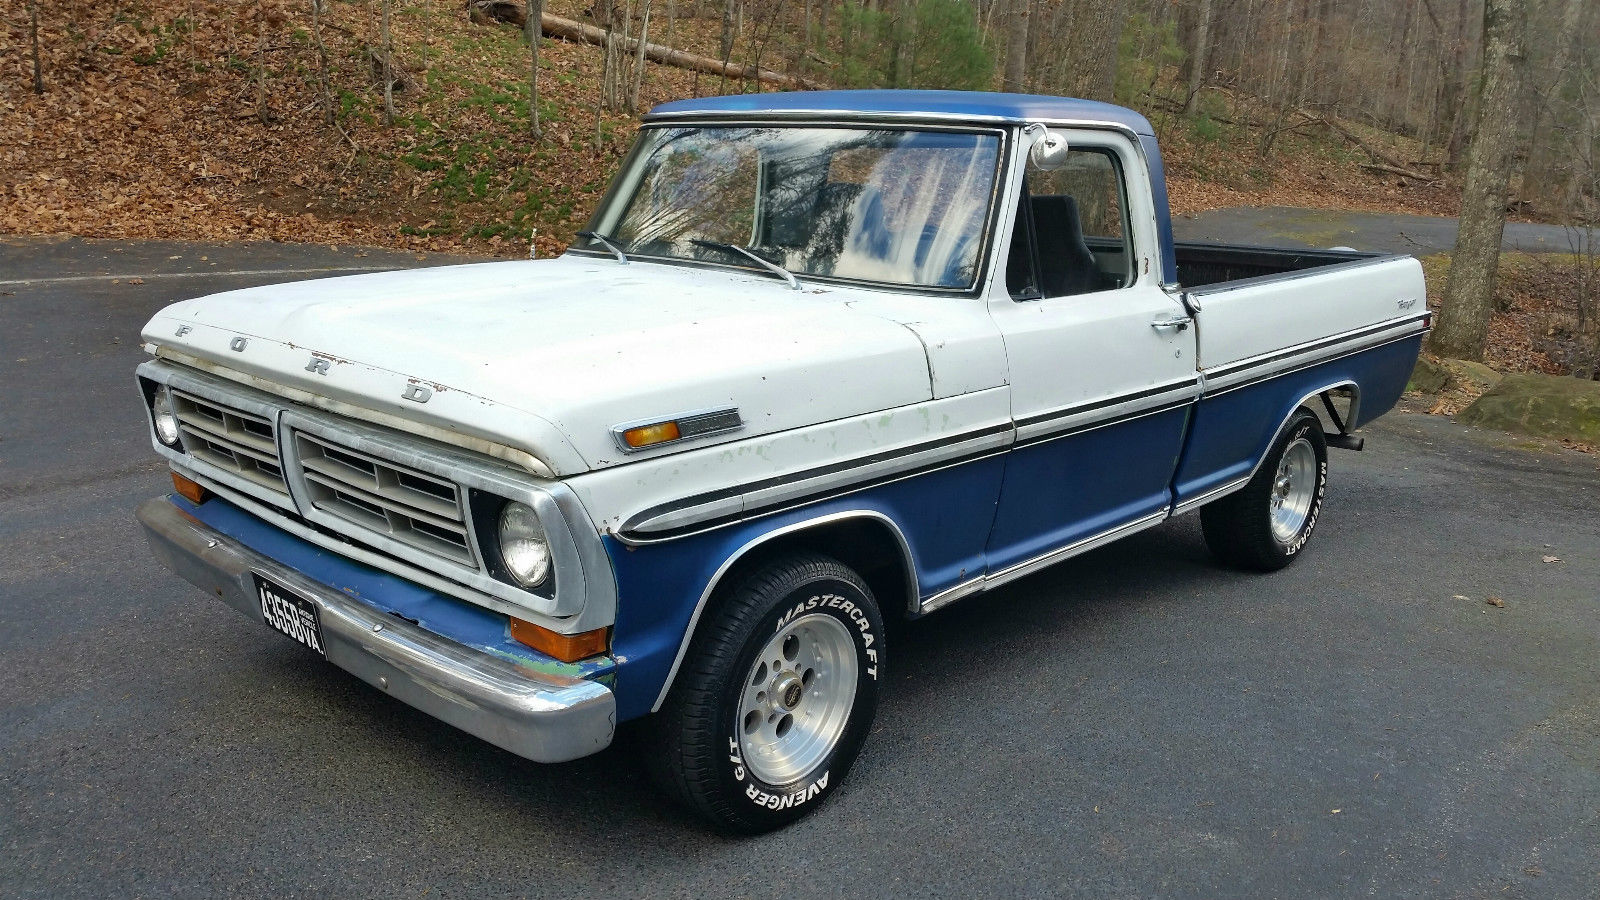 72 ford ranger f100 shortbed 70 mustang 351w 4 speed power steering 67 68 69 71 for sale in